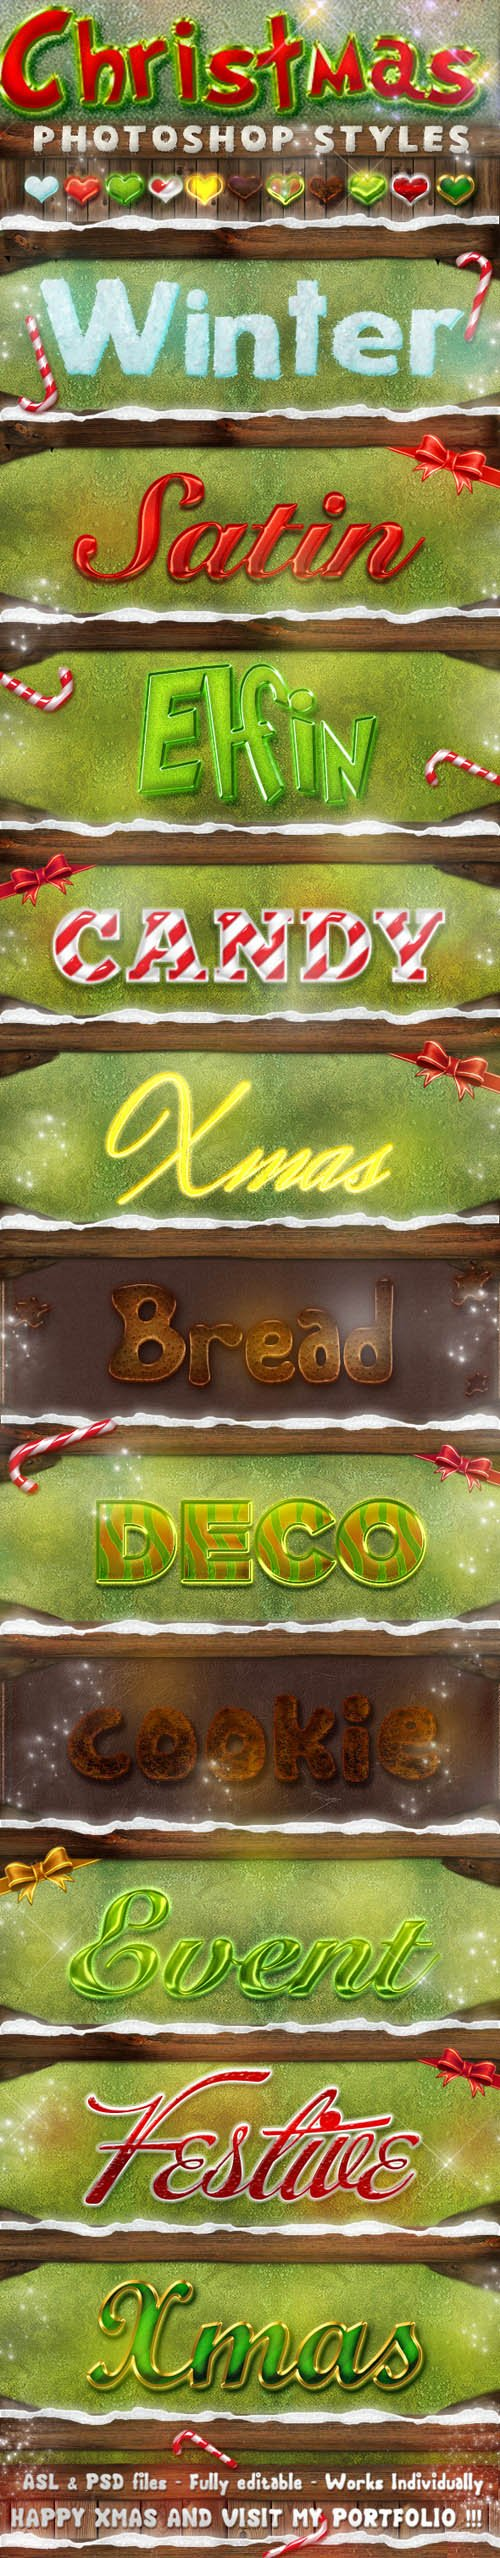 Christmas Photoshop Styles - Text Effects [ASL/PSD]